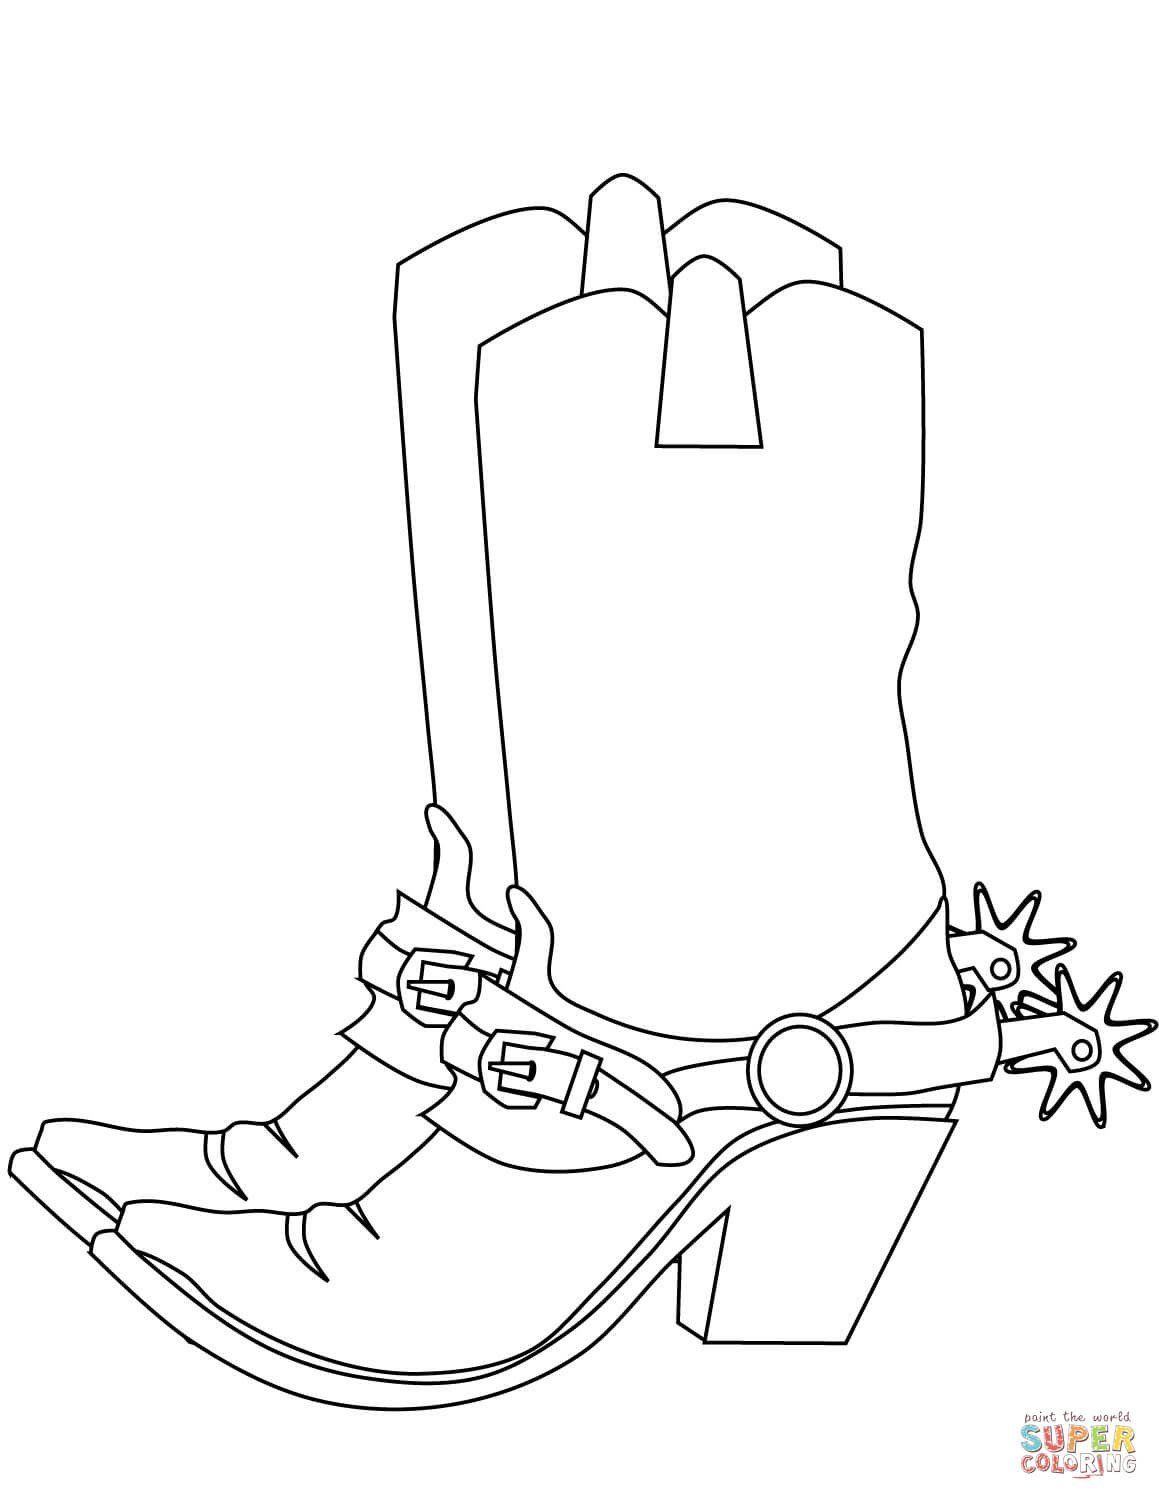 Cowboy Coloring Pages |Small Cowboy Hat Coloring Page